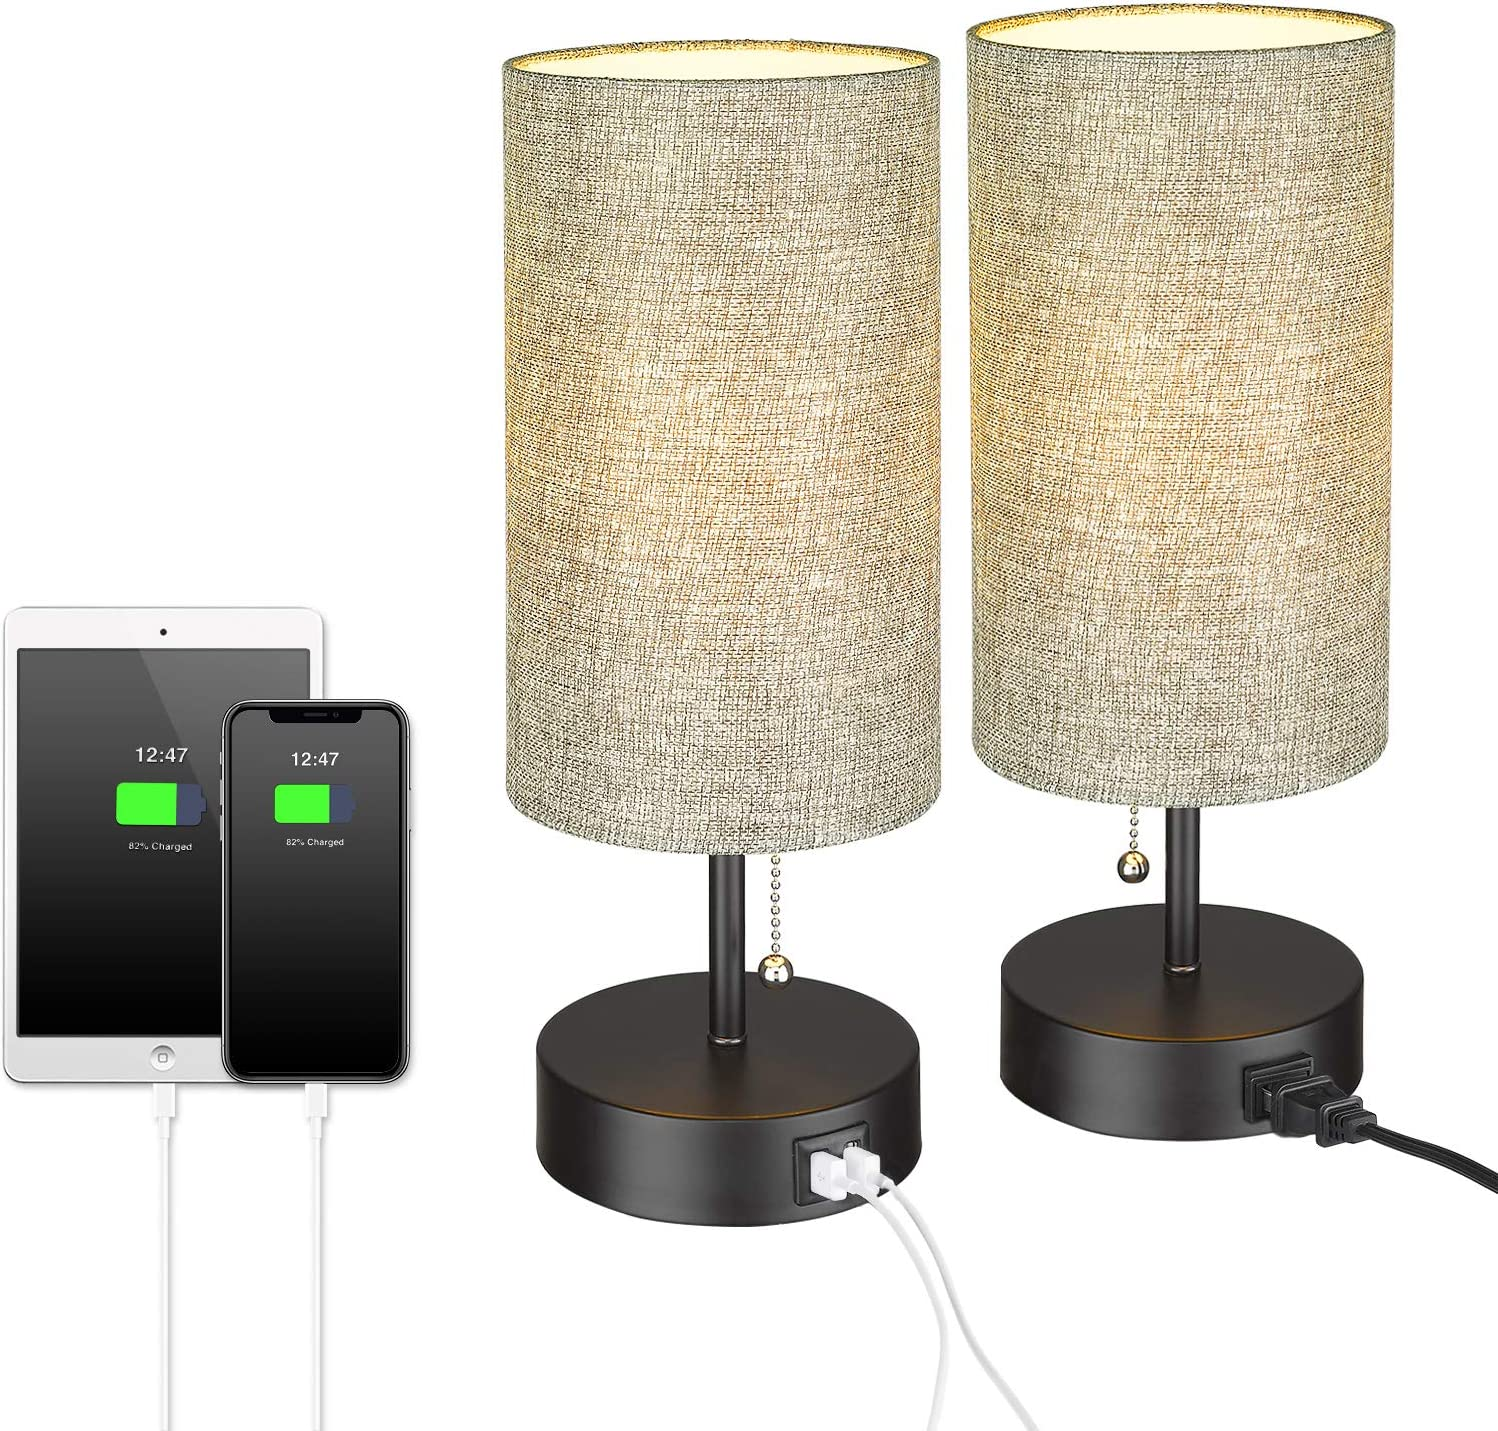 USB Bedside Table Lamps Set Nightstand 2 NEW of Challenge the lowest price of Japan Modern ELYONA